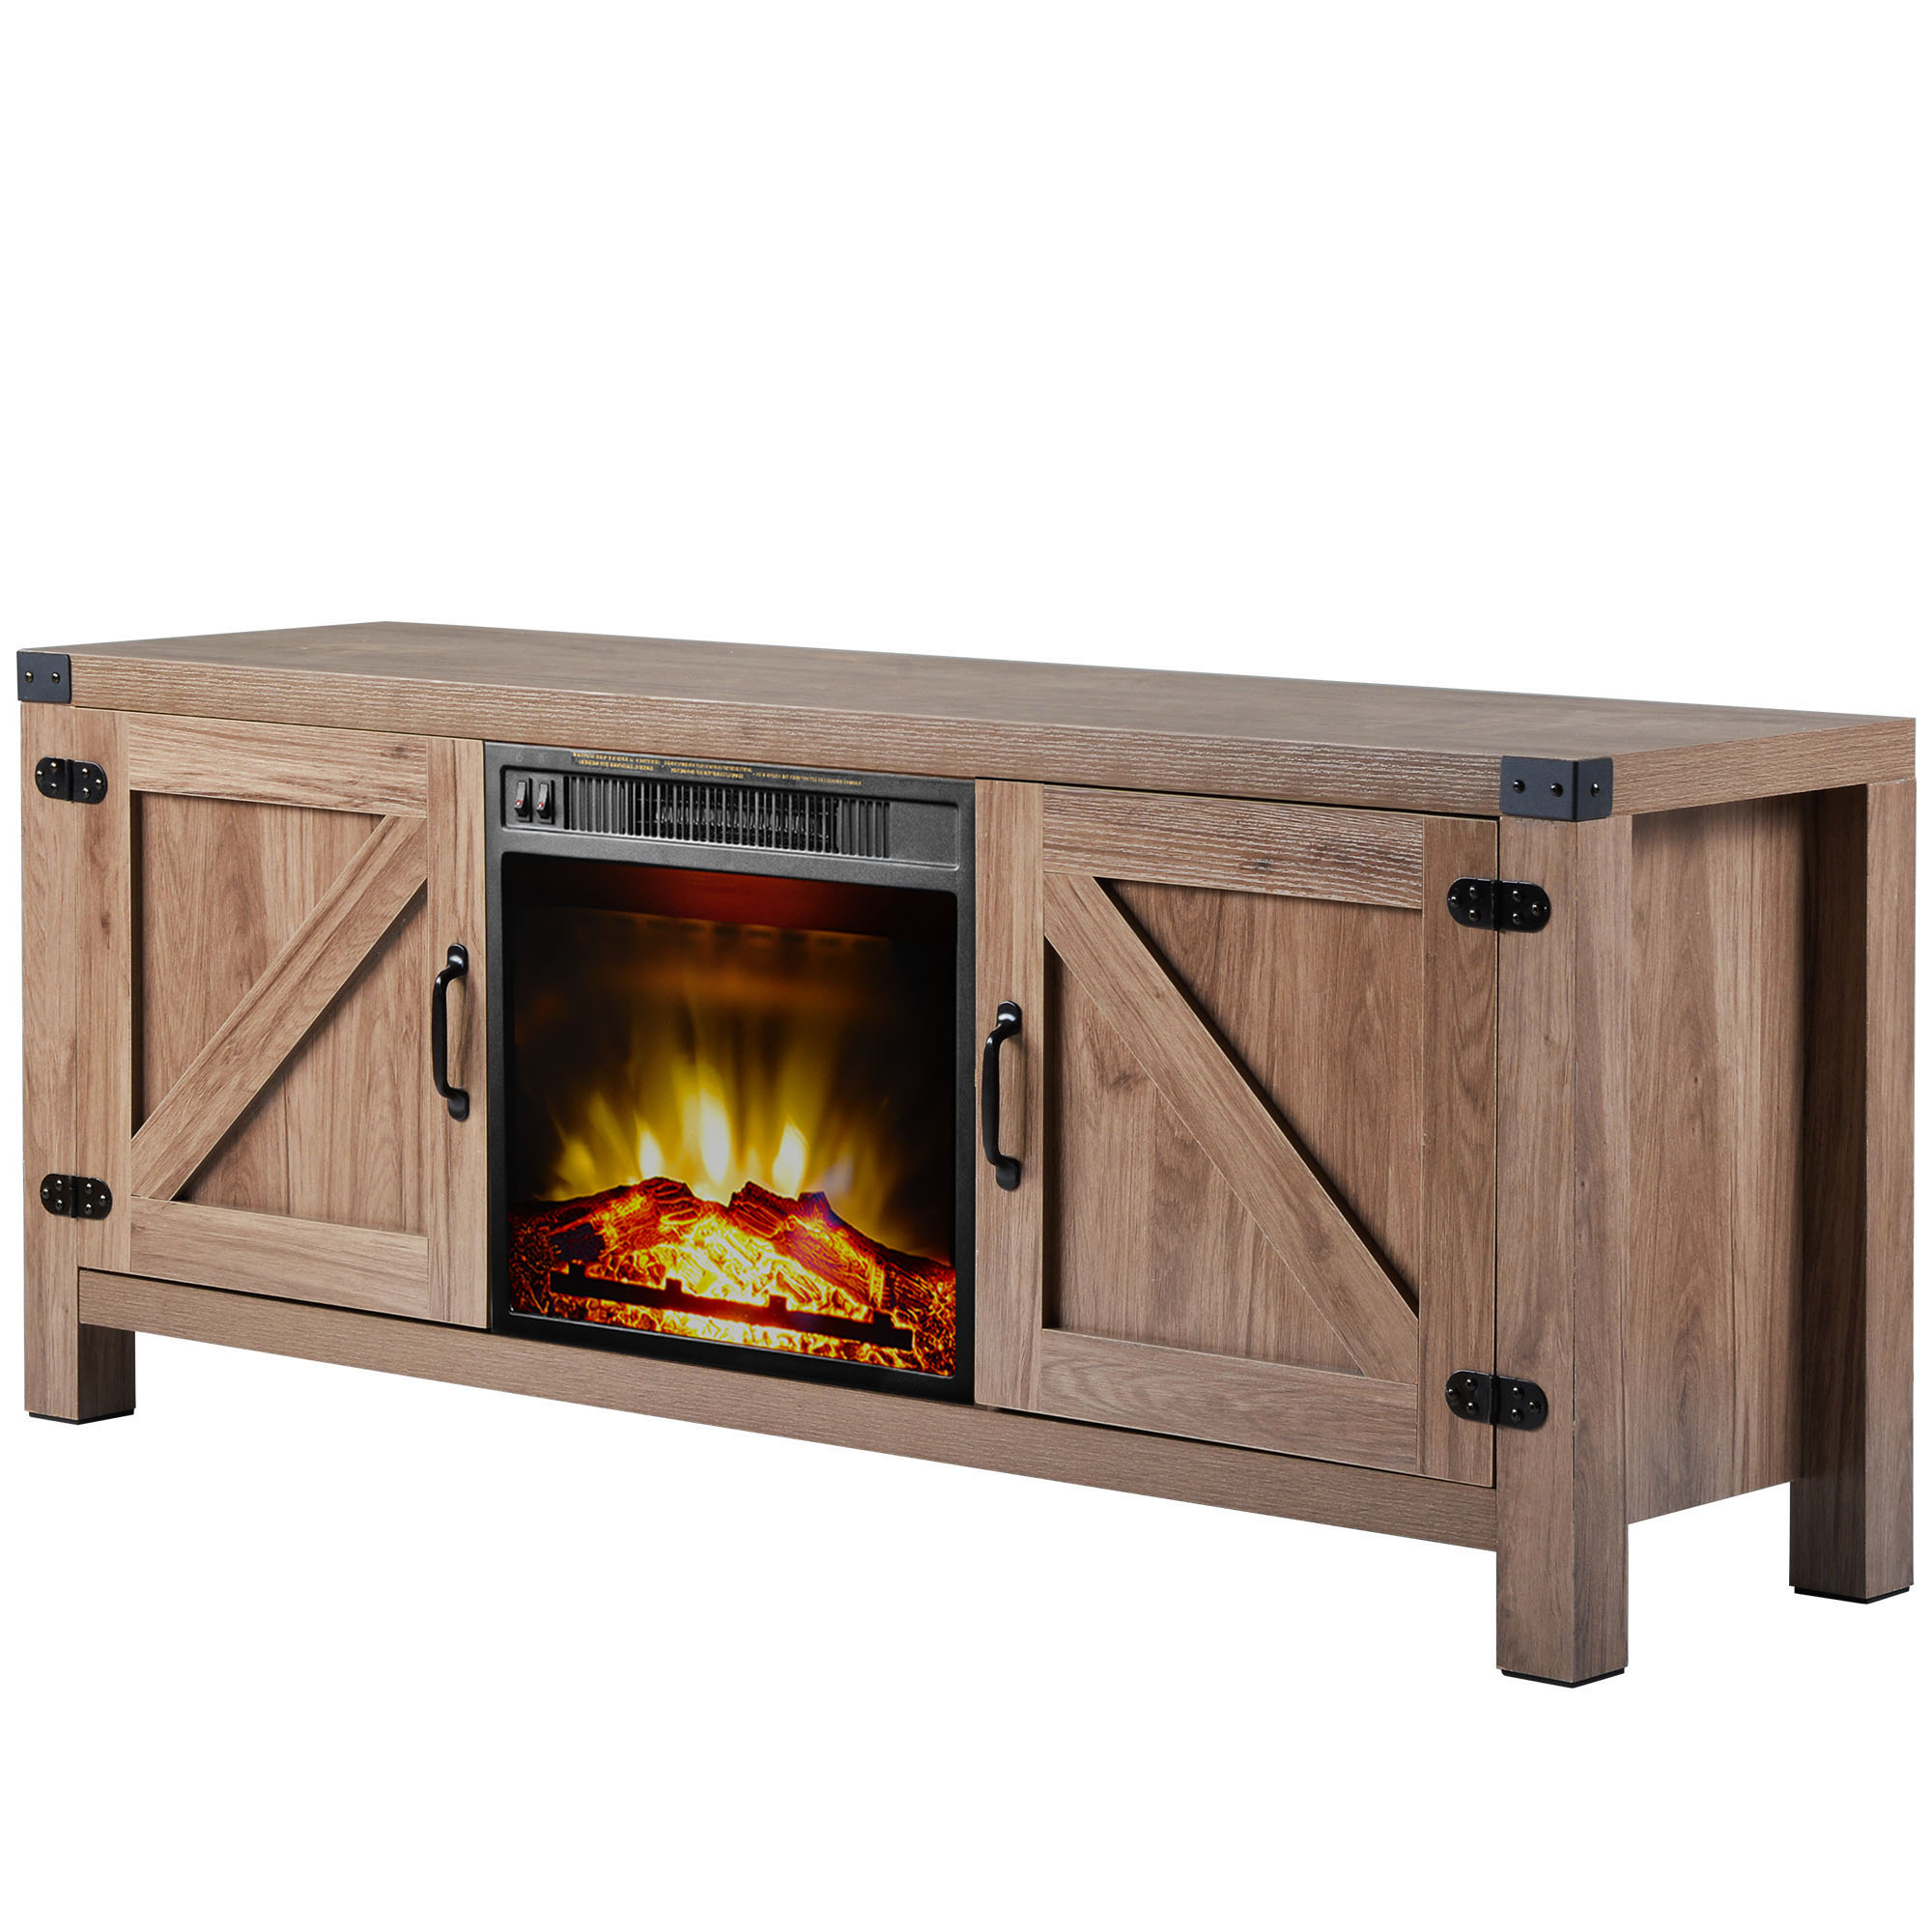 """Segmart Fireplace Tv Stands For Tvs Up To 65"""", Rustic Regarding Totally Tv Stands For Tvs Up To 65"""" (View 16 of 20)"""